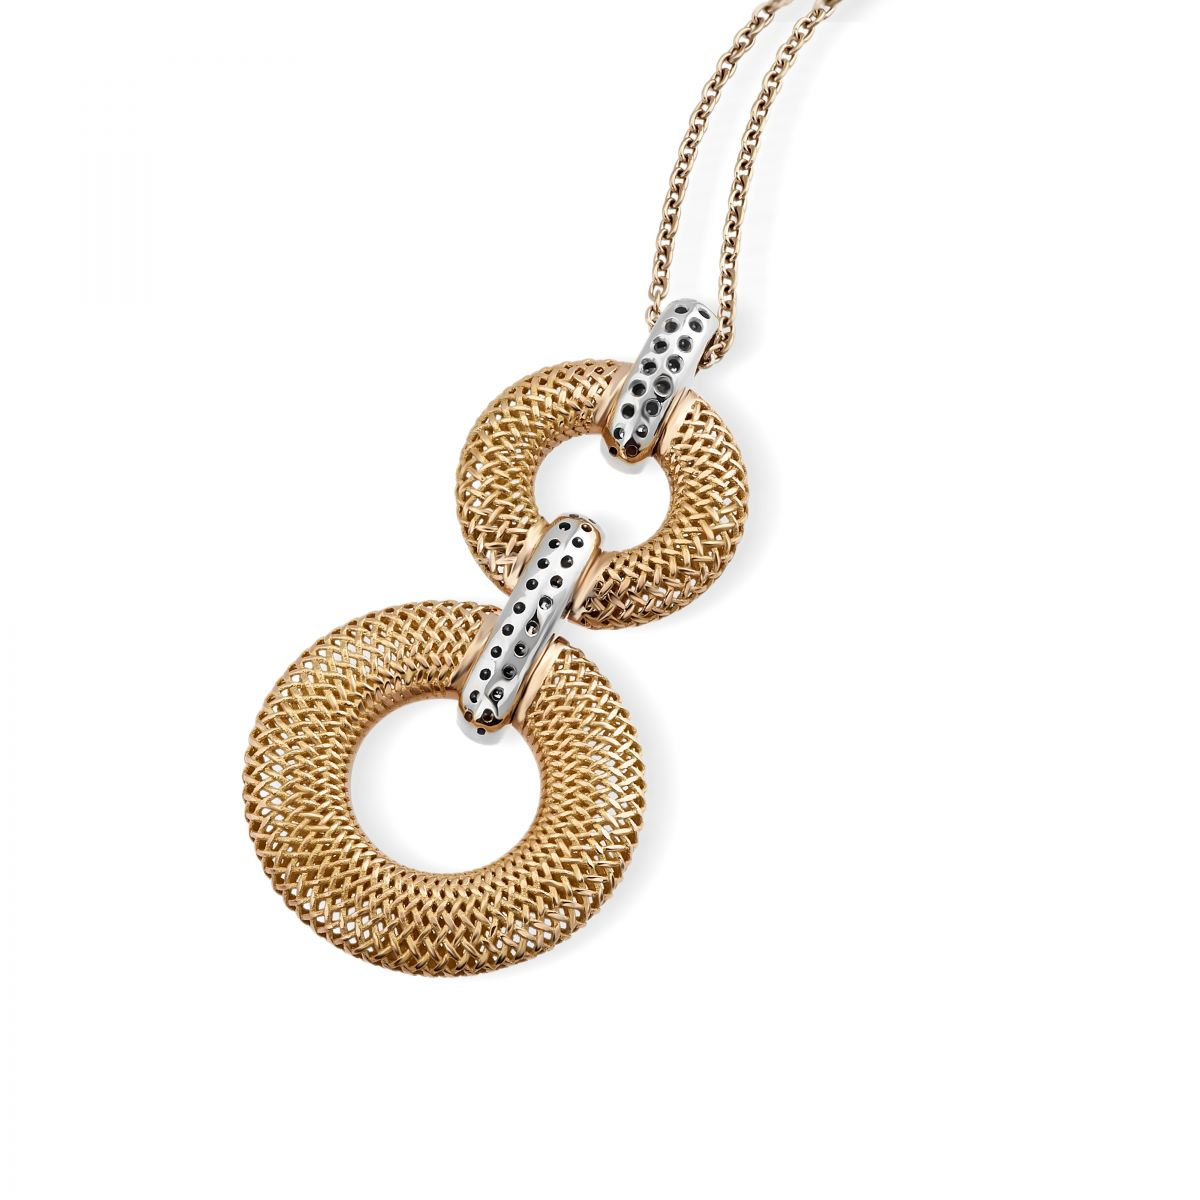 net pendant with chain pendants with chain